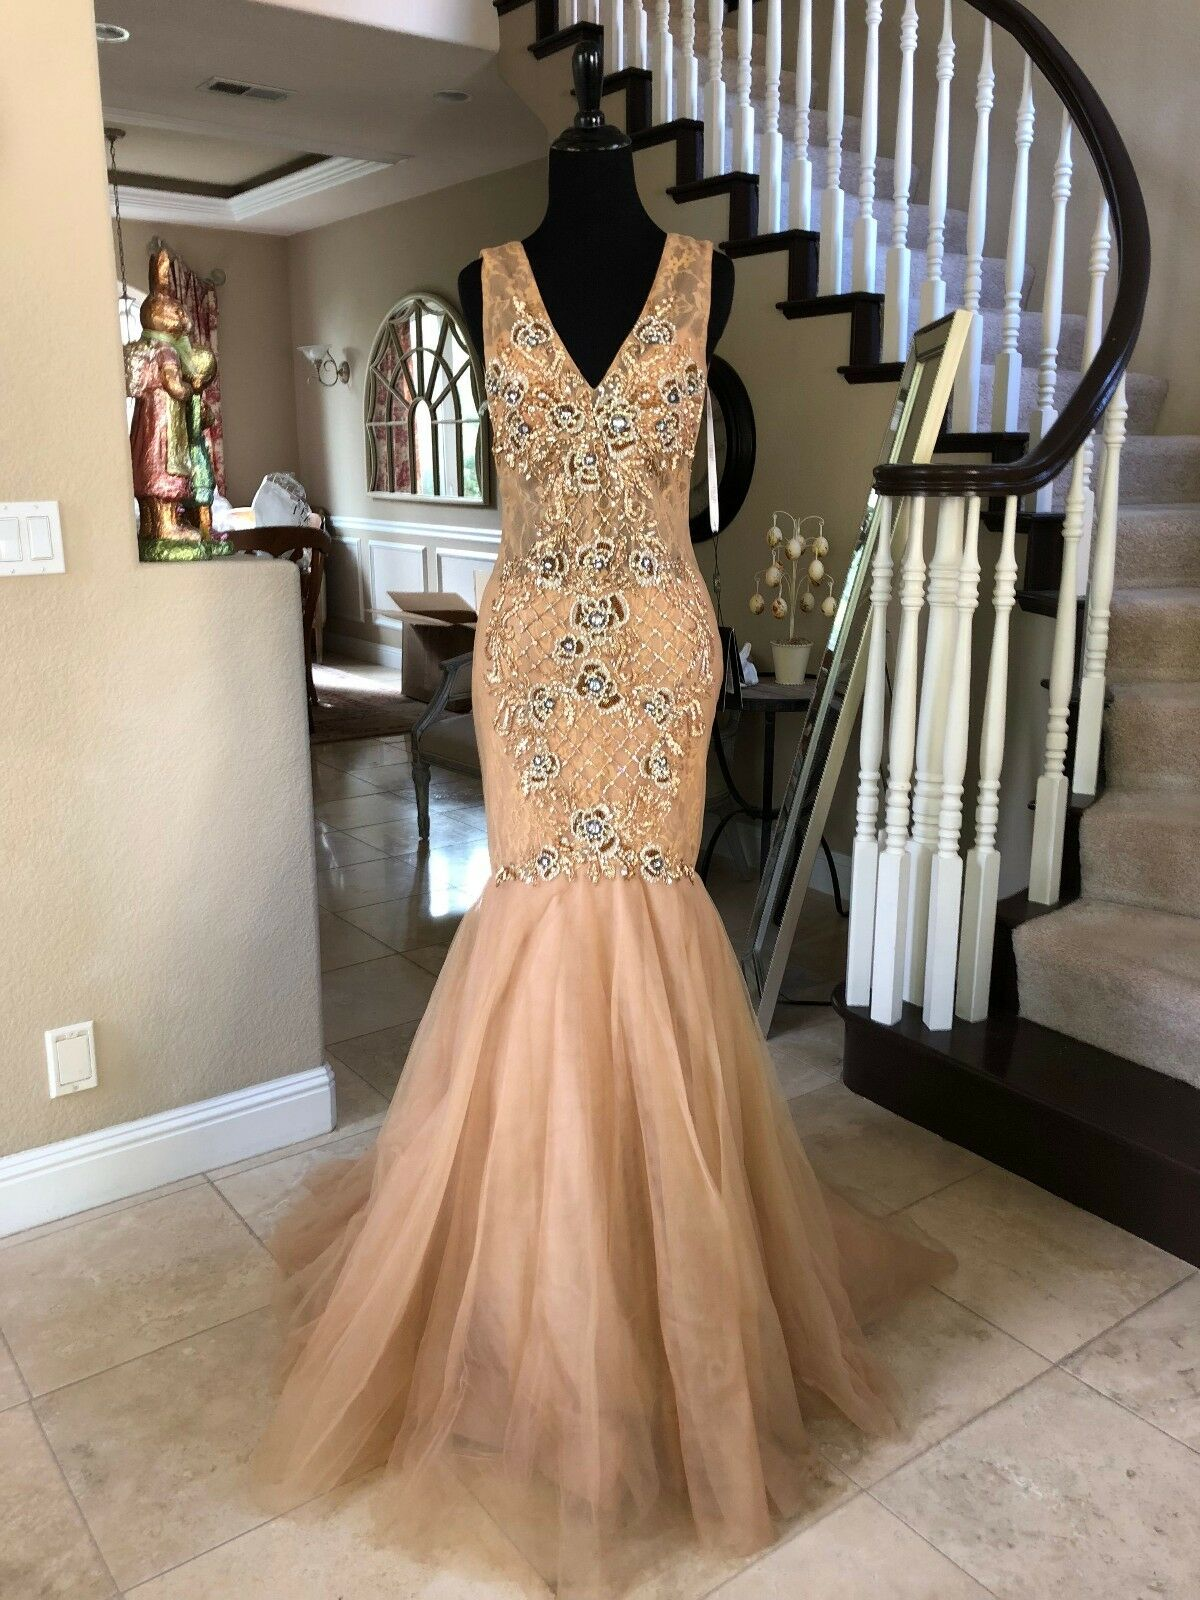 374 NWT TERANI COUTURE MERMAID PROM PAGEANT FORMAL DRESS GOWN P2637 SIZE 0